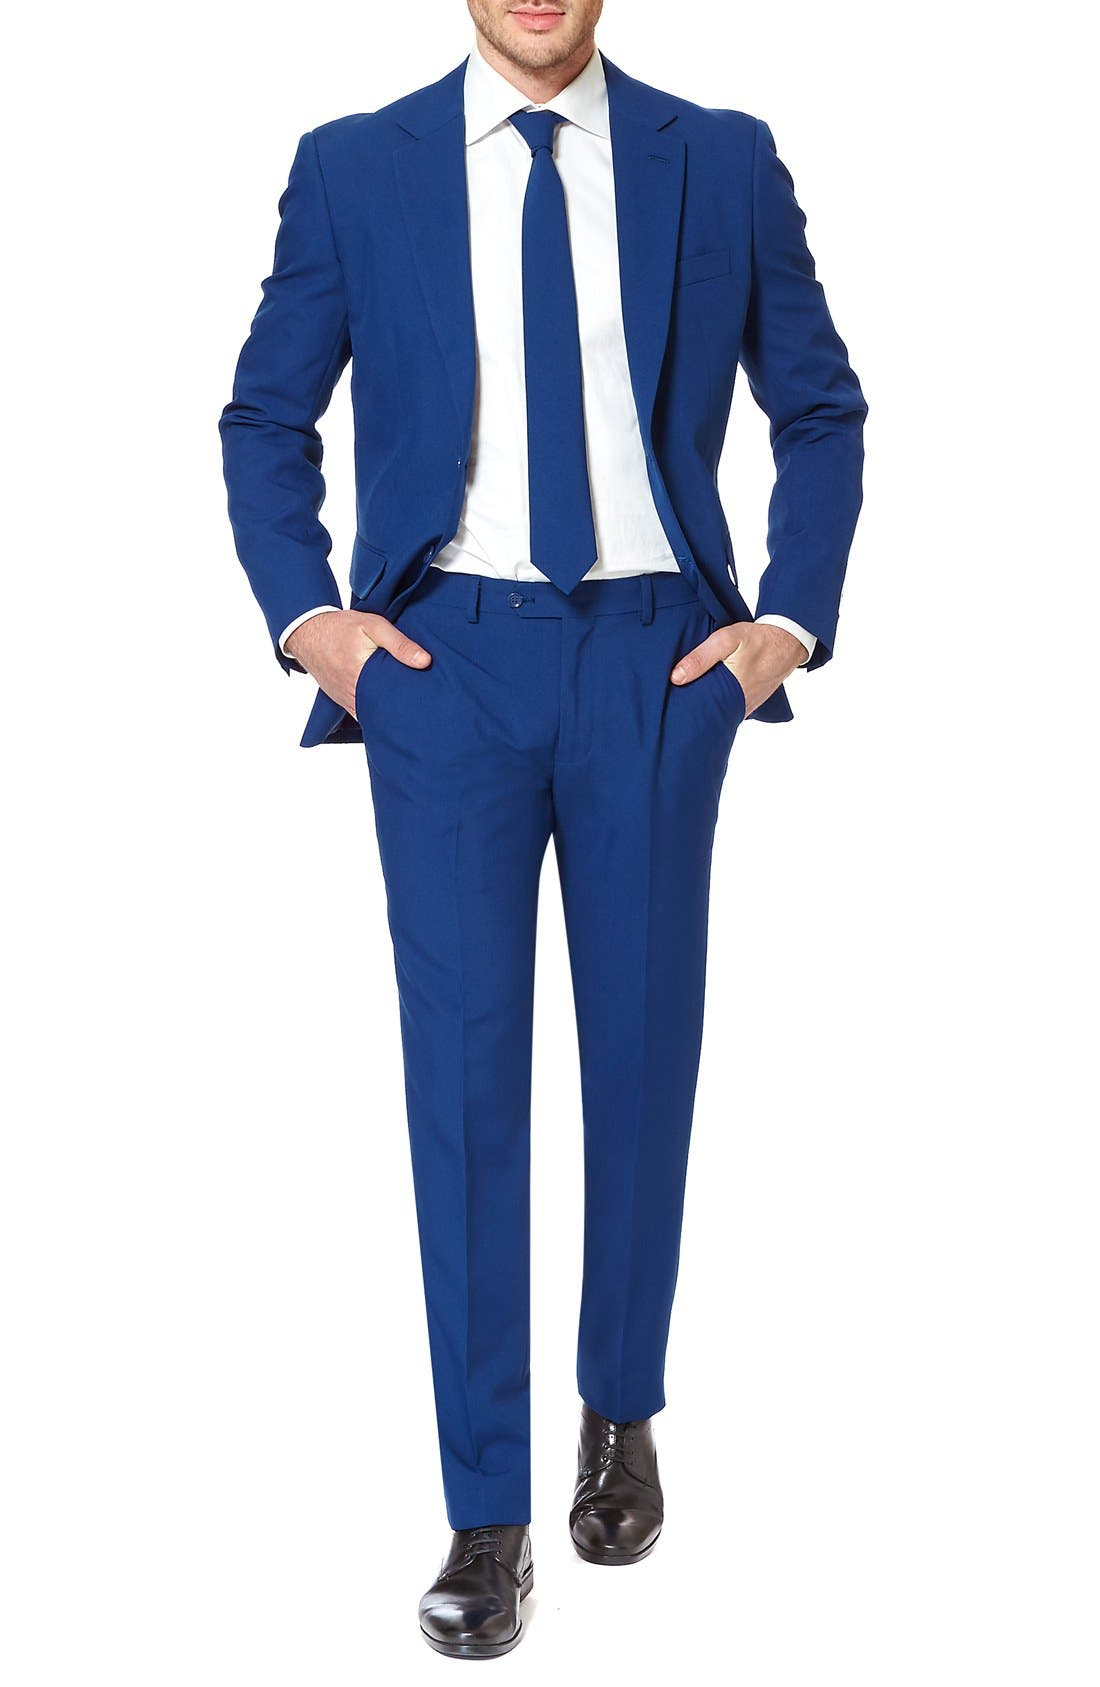 OppoSuits 'Navy Royale' Trim Fit Two-Piece Suit with Tie